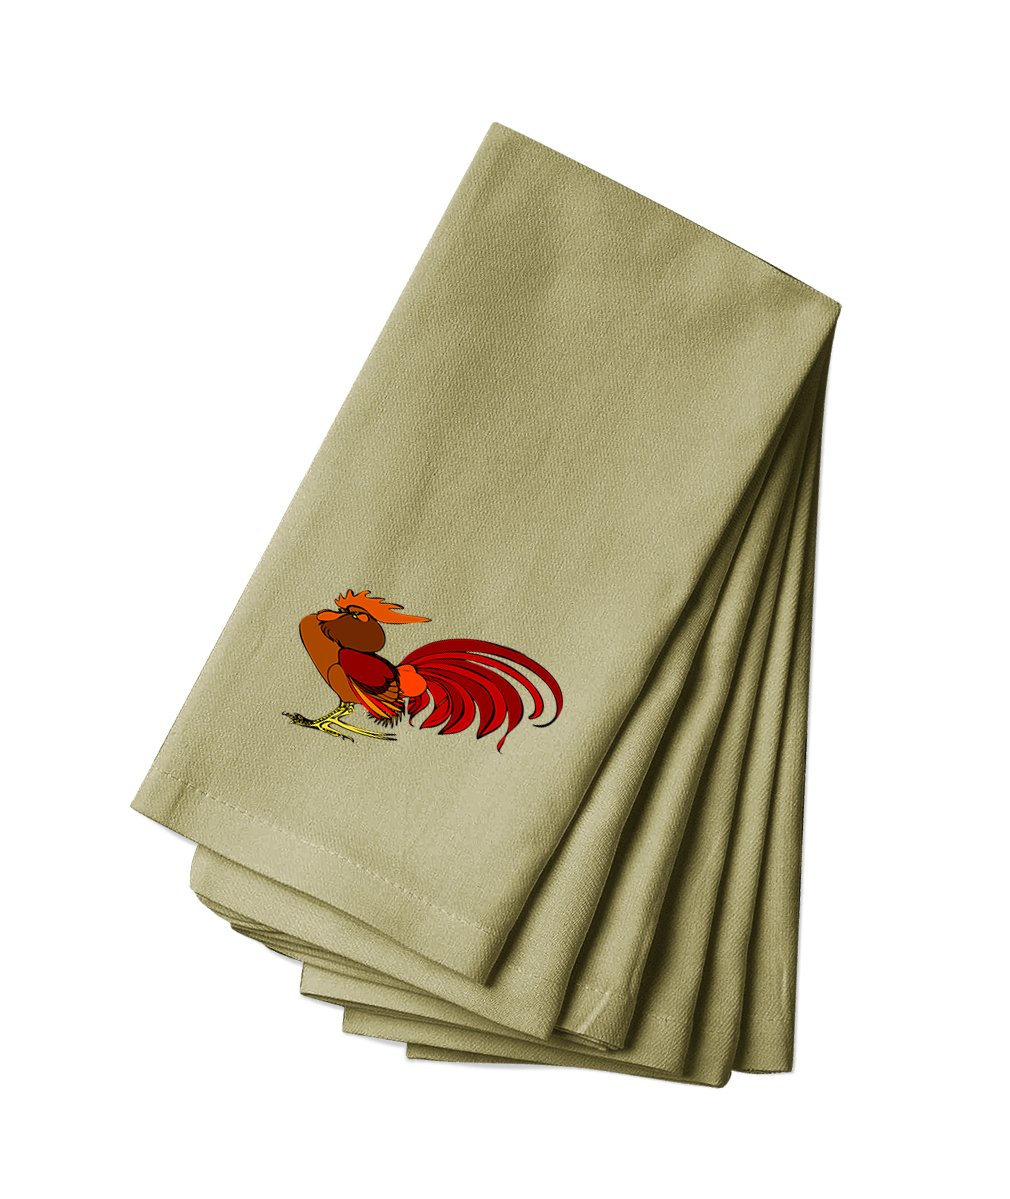 Style in Print Cotton Canvas Dinner Napkin Set Of 4 Rooster Animal Image By